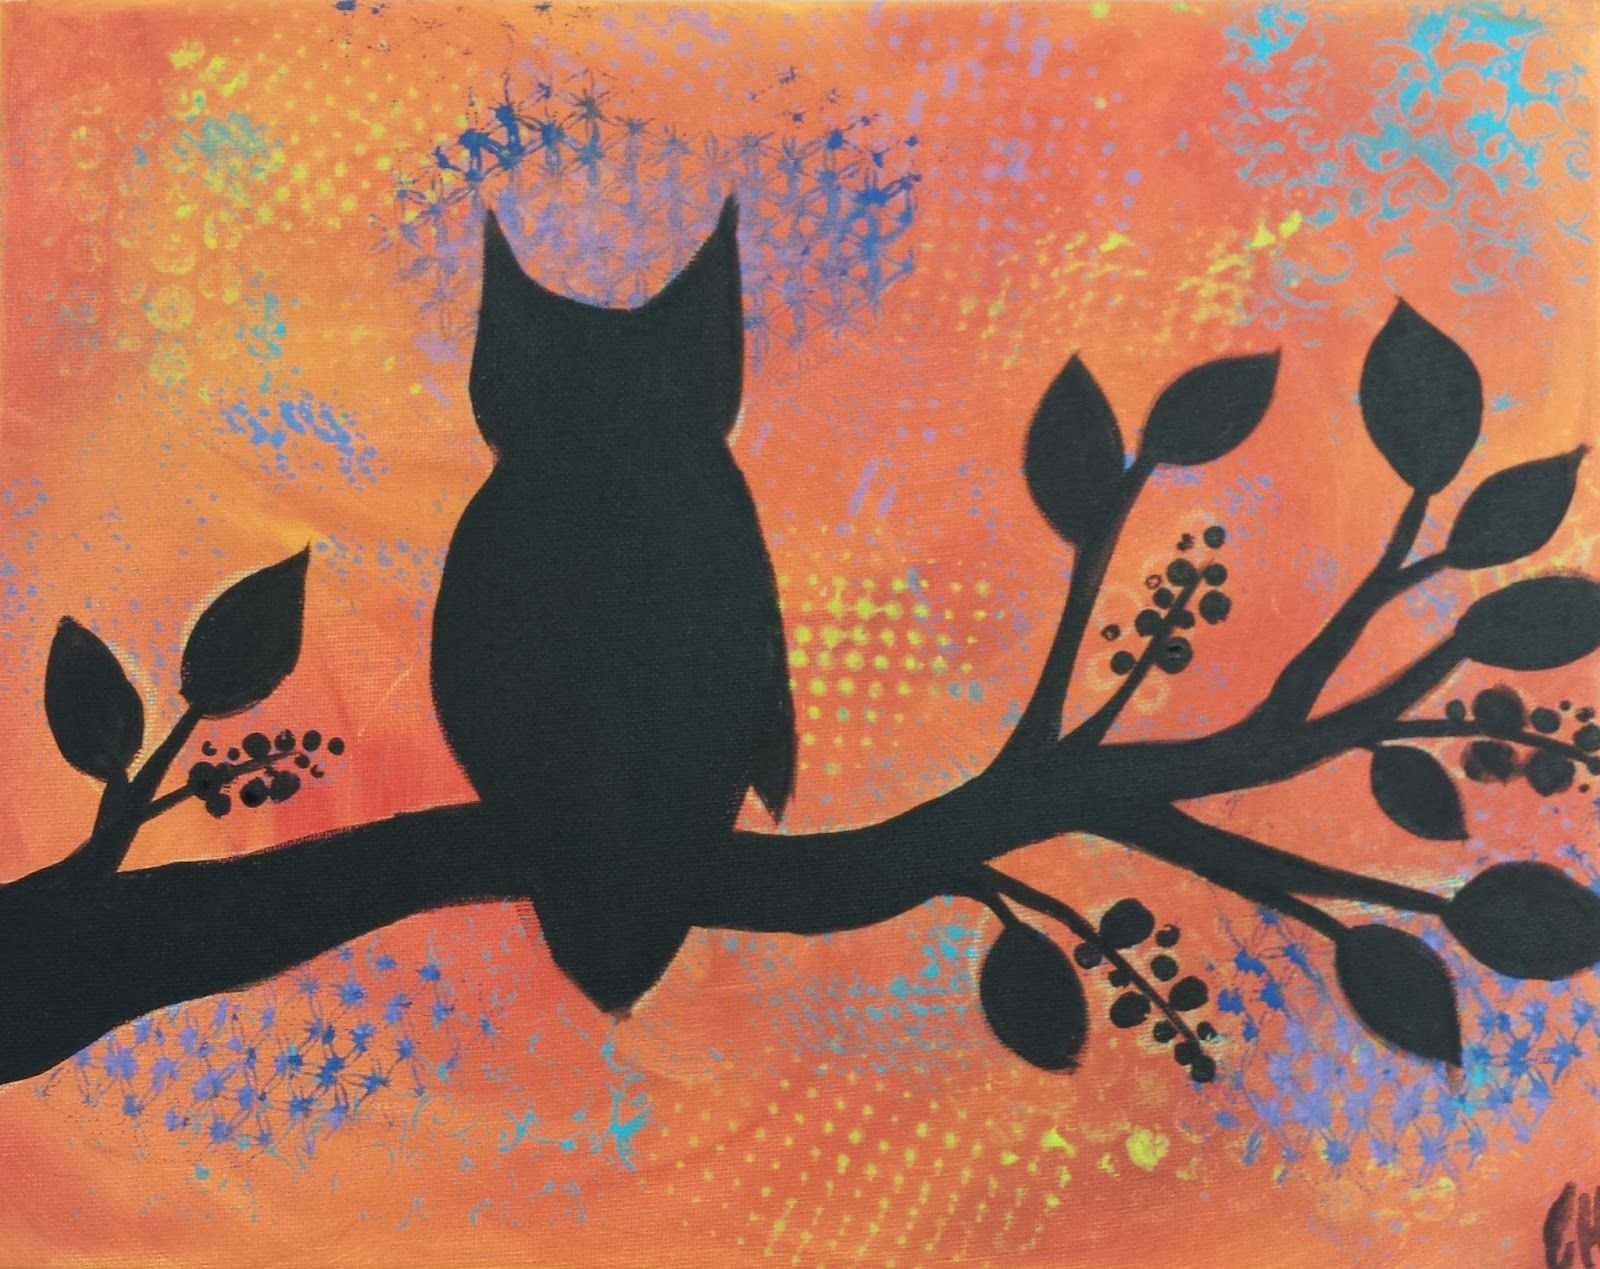 My Art Class Started Our New Fall Session With This Owl Silhouette Painting We Did An Abstract Background In Sunset Colors And Then O